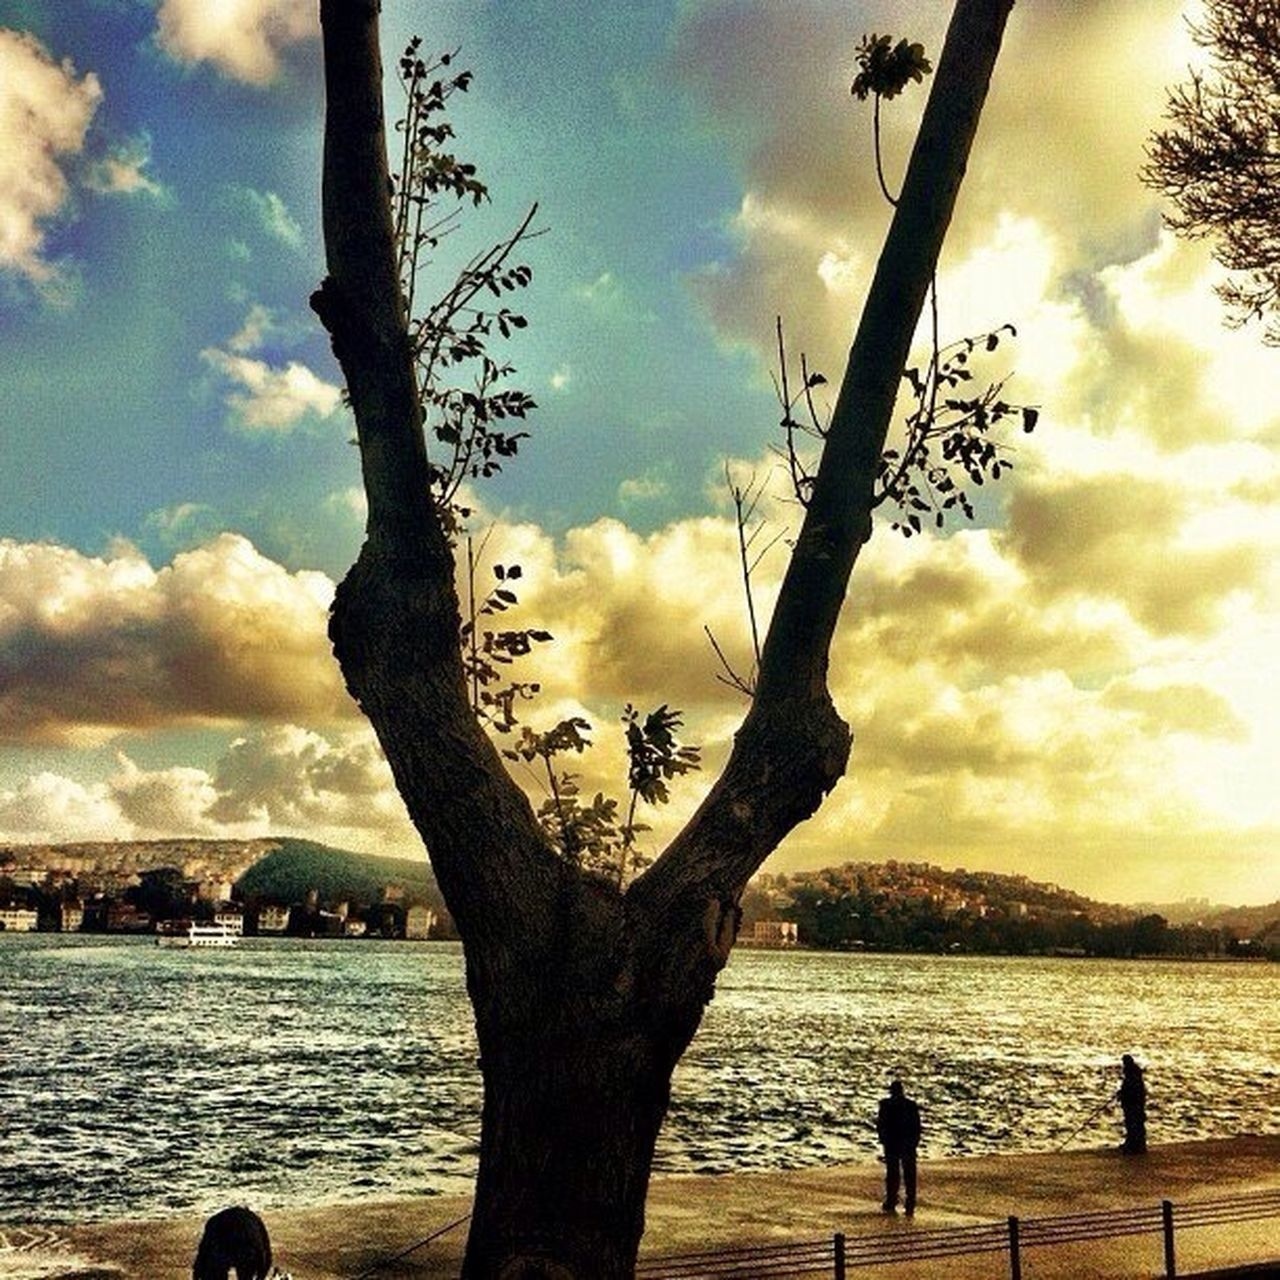 tree, sky, cloud - sky, water, tree trunk, nature, sea, outdoors, beauty in nature, scenics, tranquility, day, branch, no people